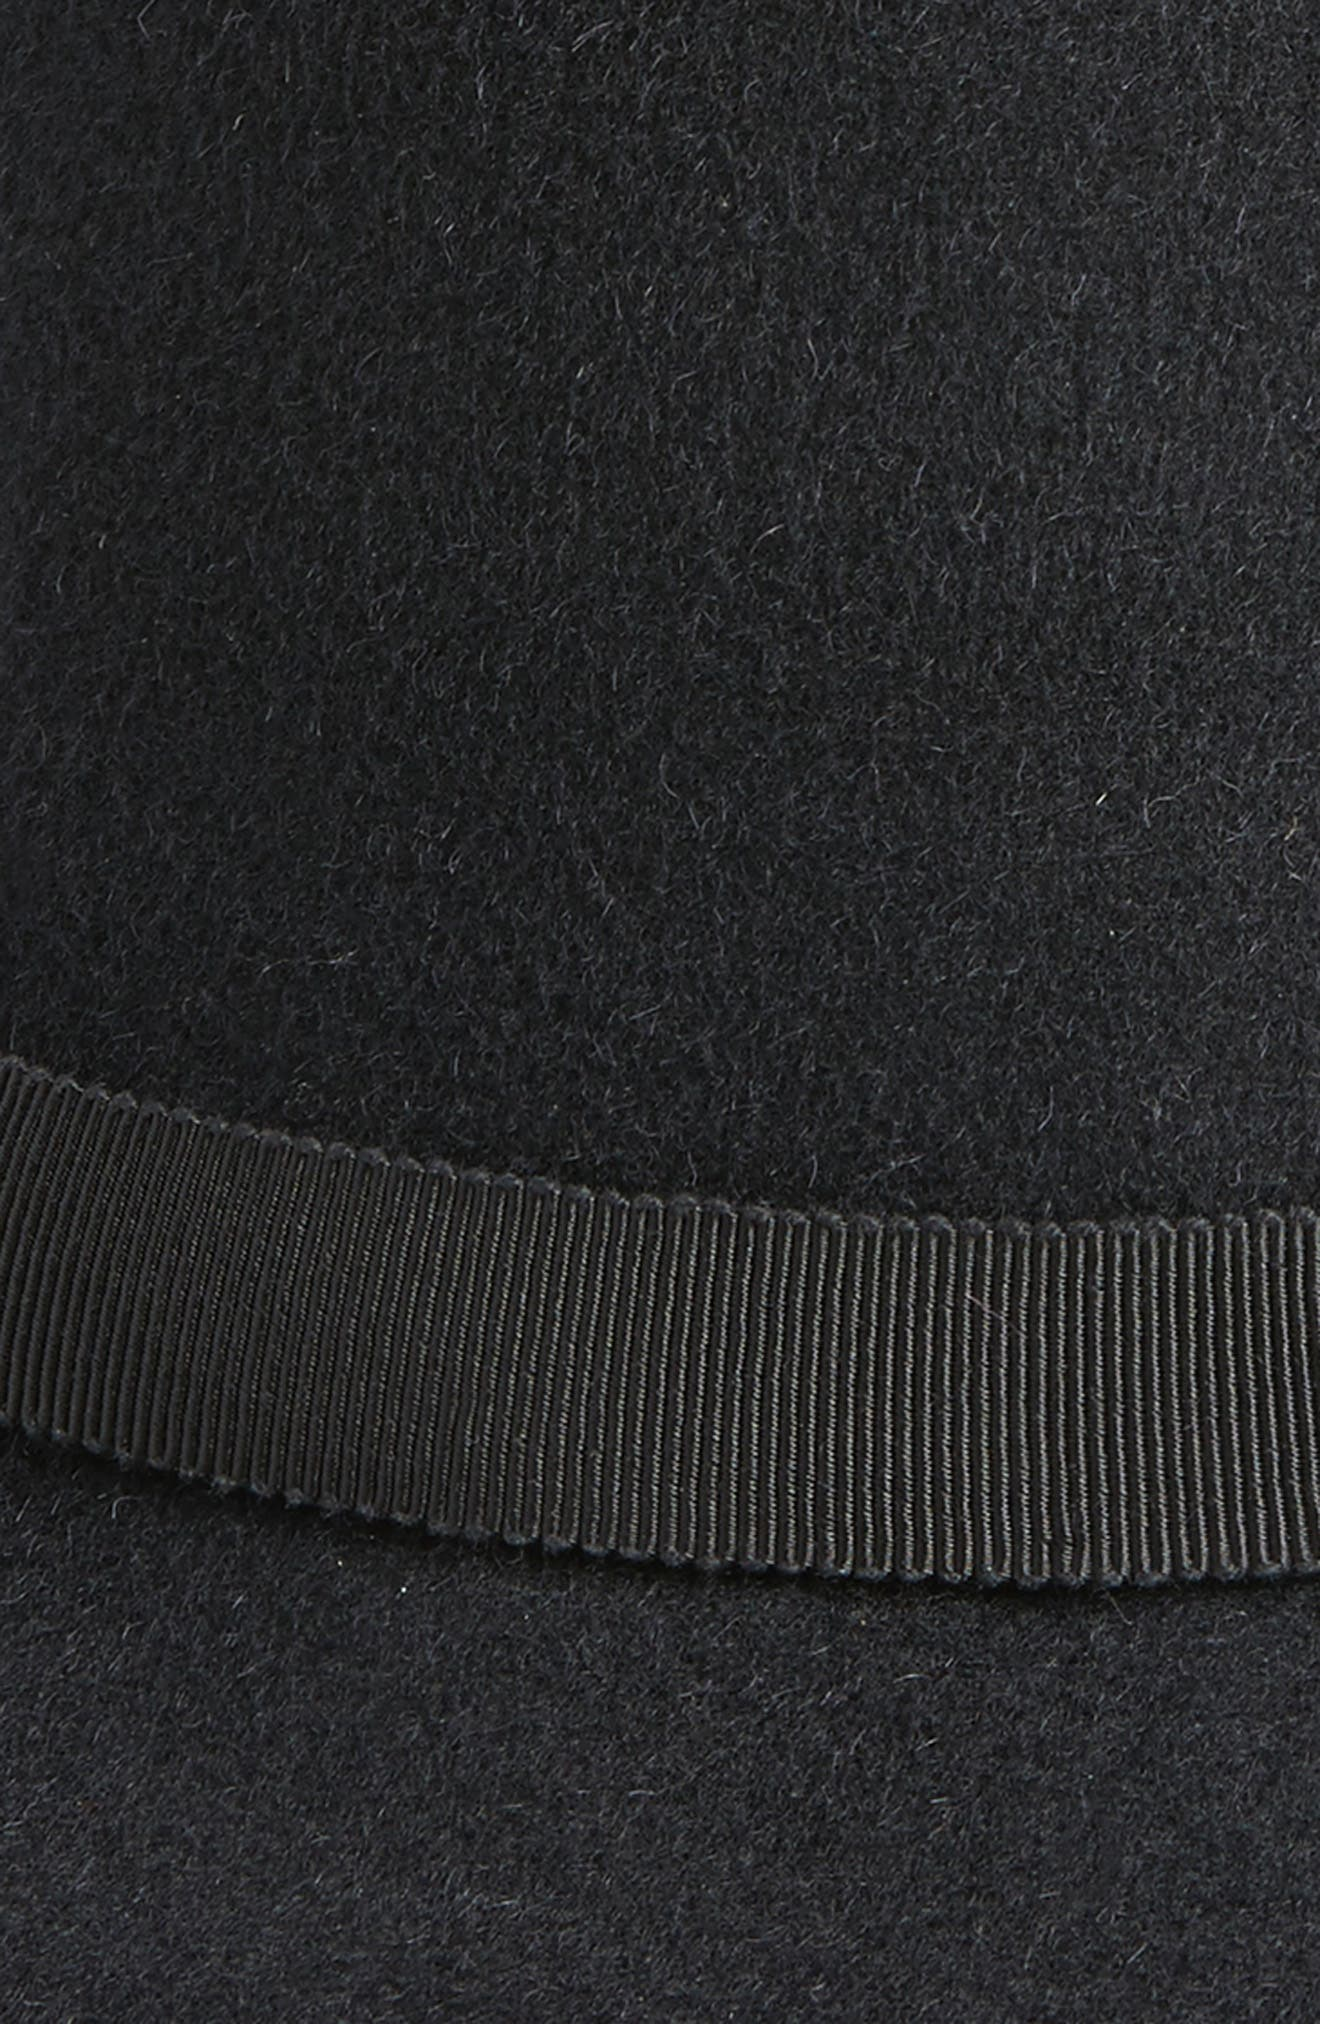 Luxe Tapered Cloche Hat,                             Alternate thumbnail 2, color,                             Black